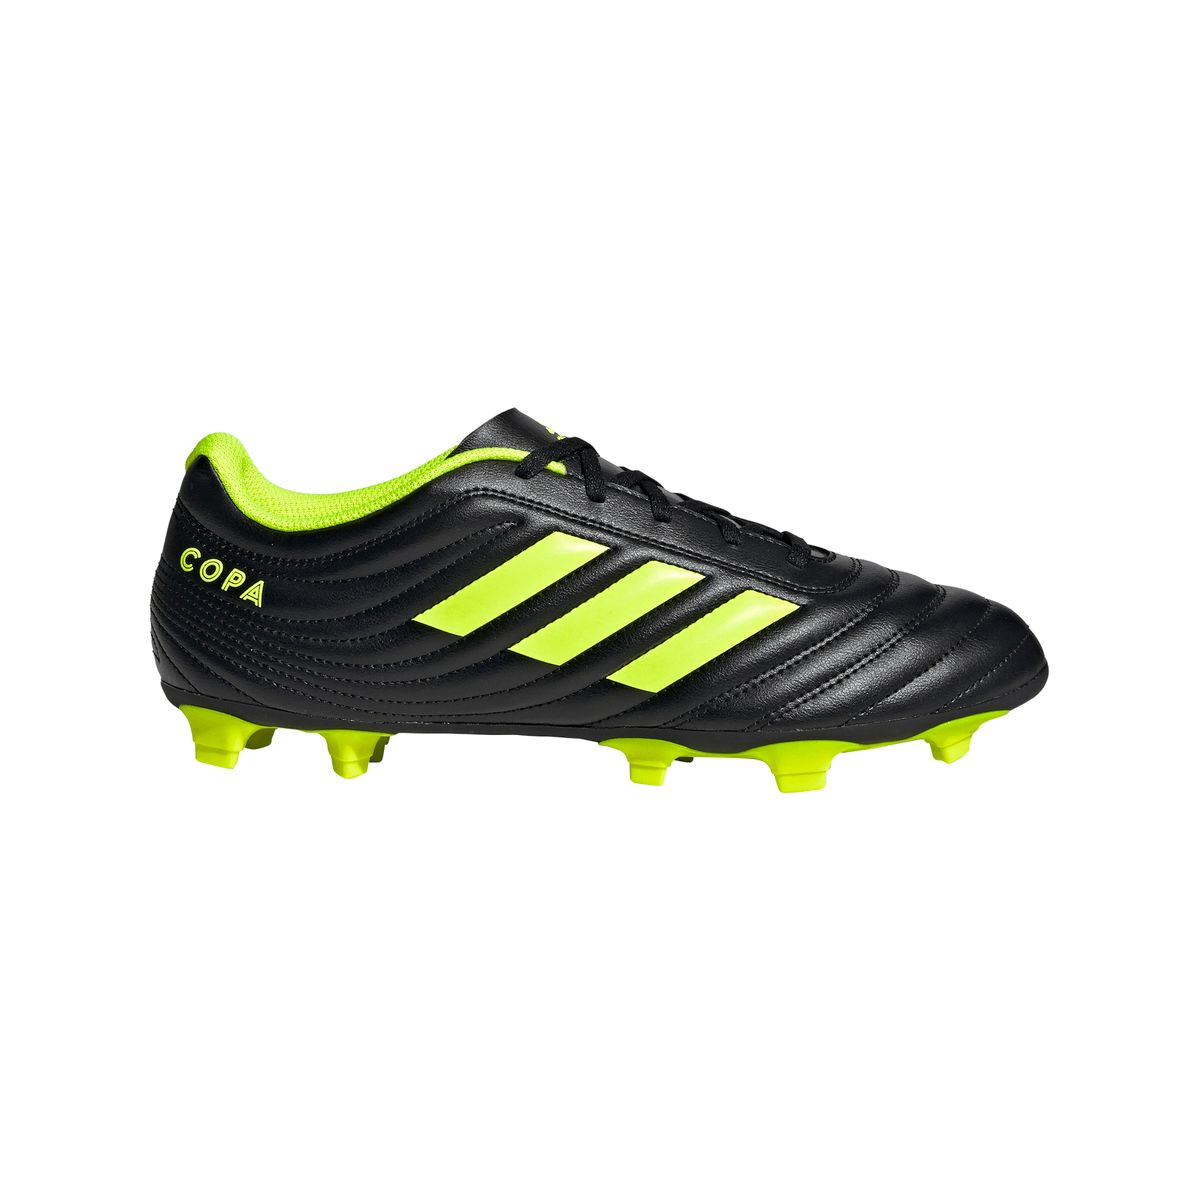 adidas Copa 19.4 Flexible Ground Mens Soccer Cleat